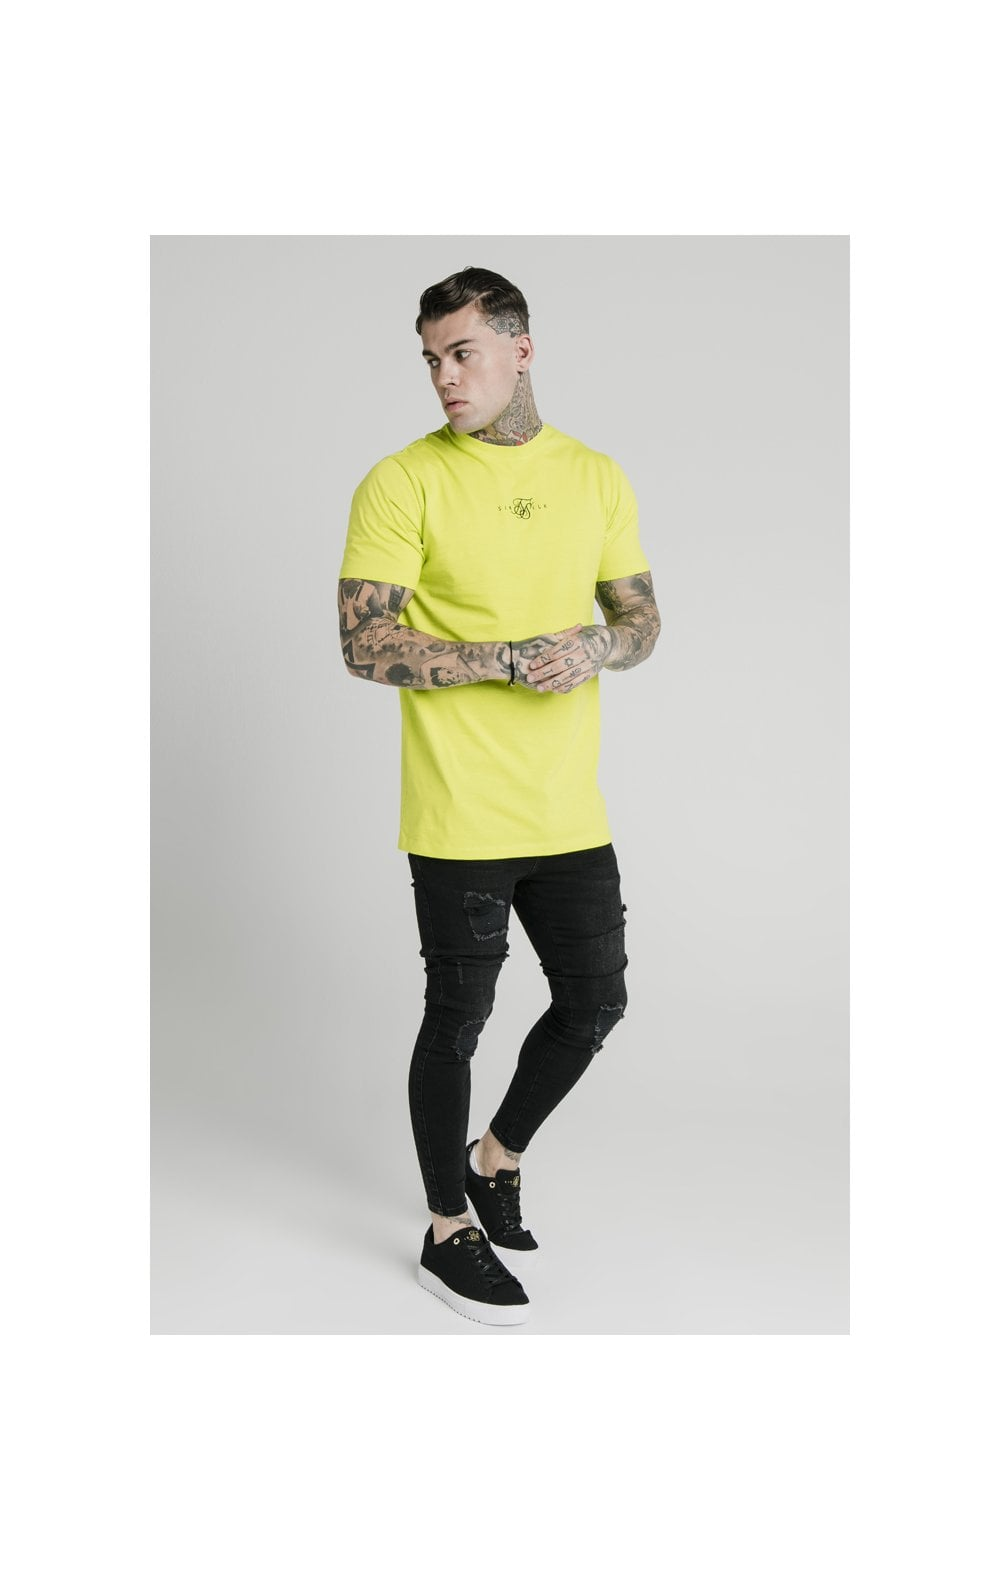 SikSilk S/S Square Hem Tee – Lime (3)